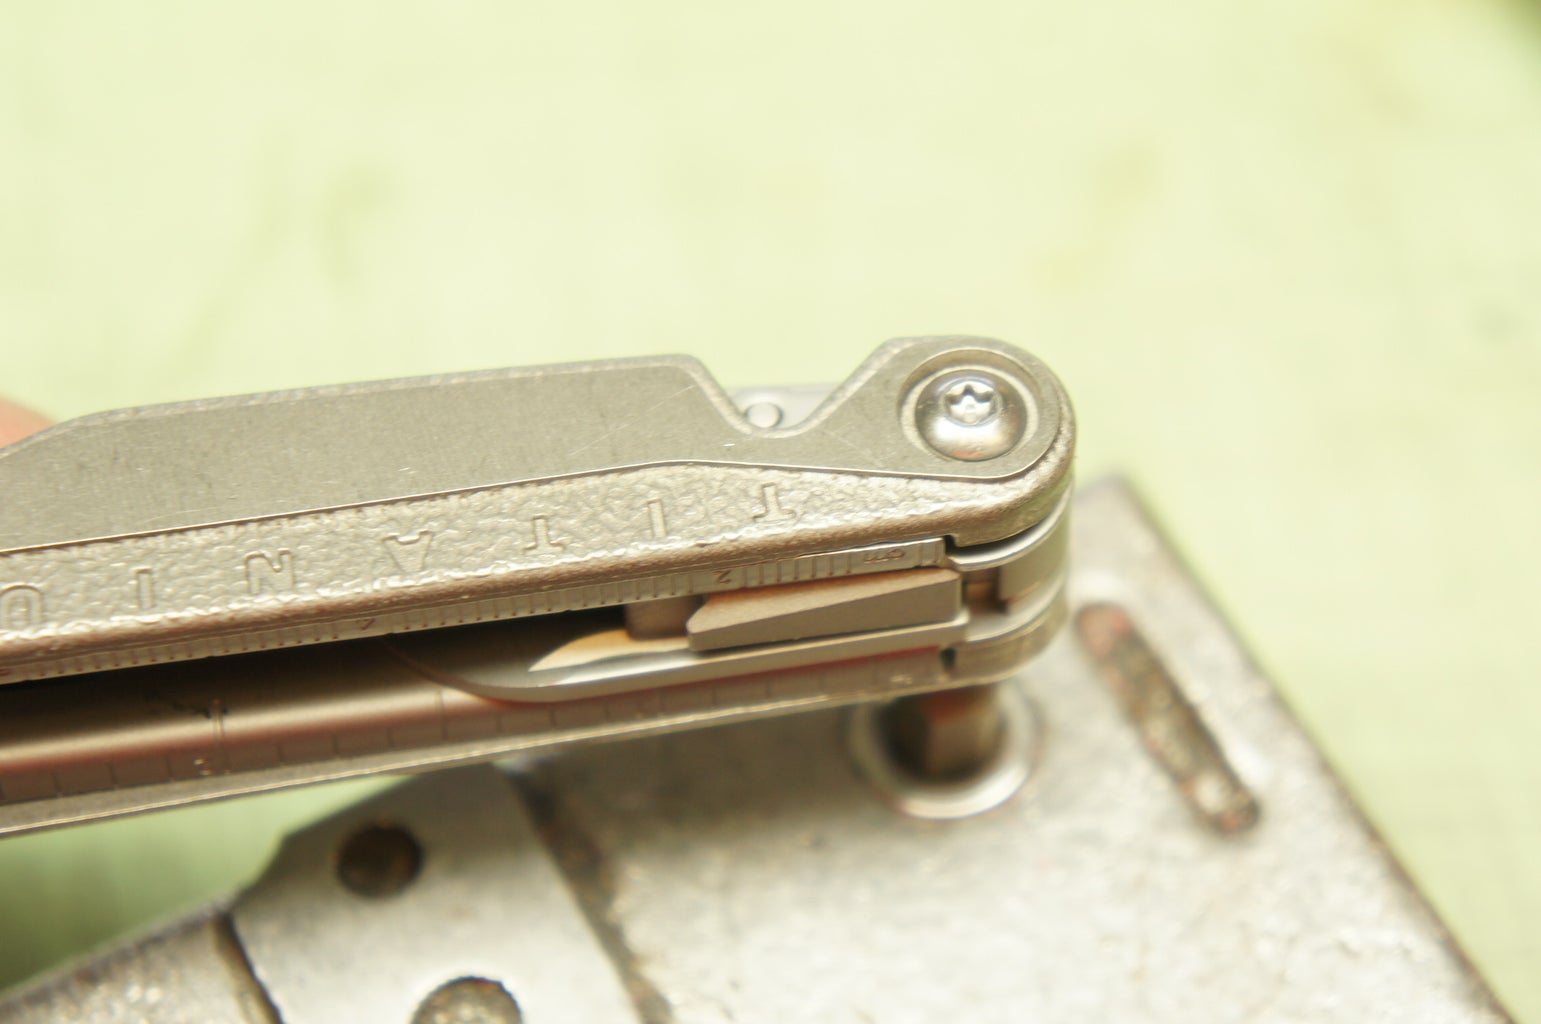 Re-insert Interior Pin (side A)